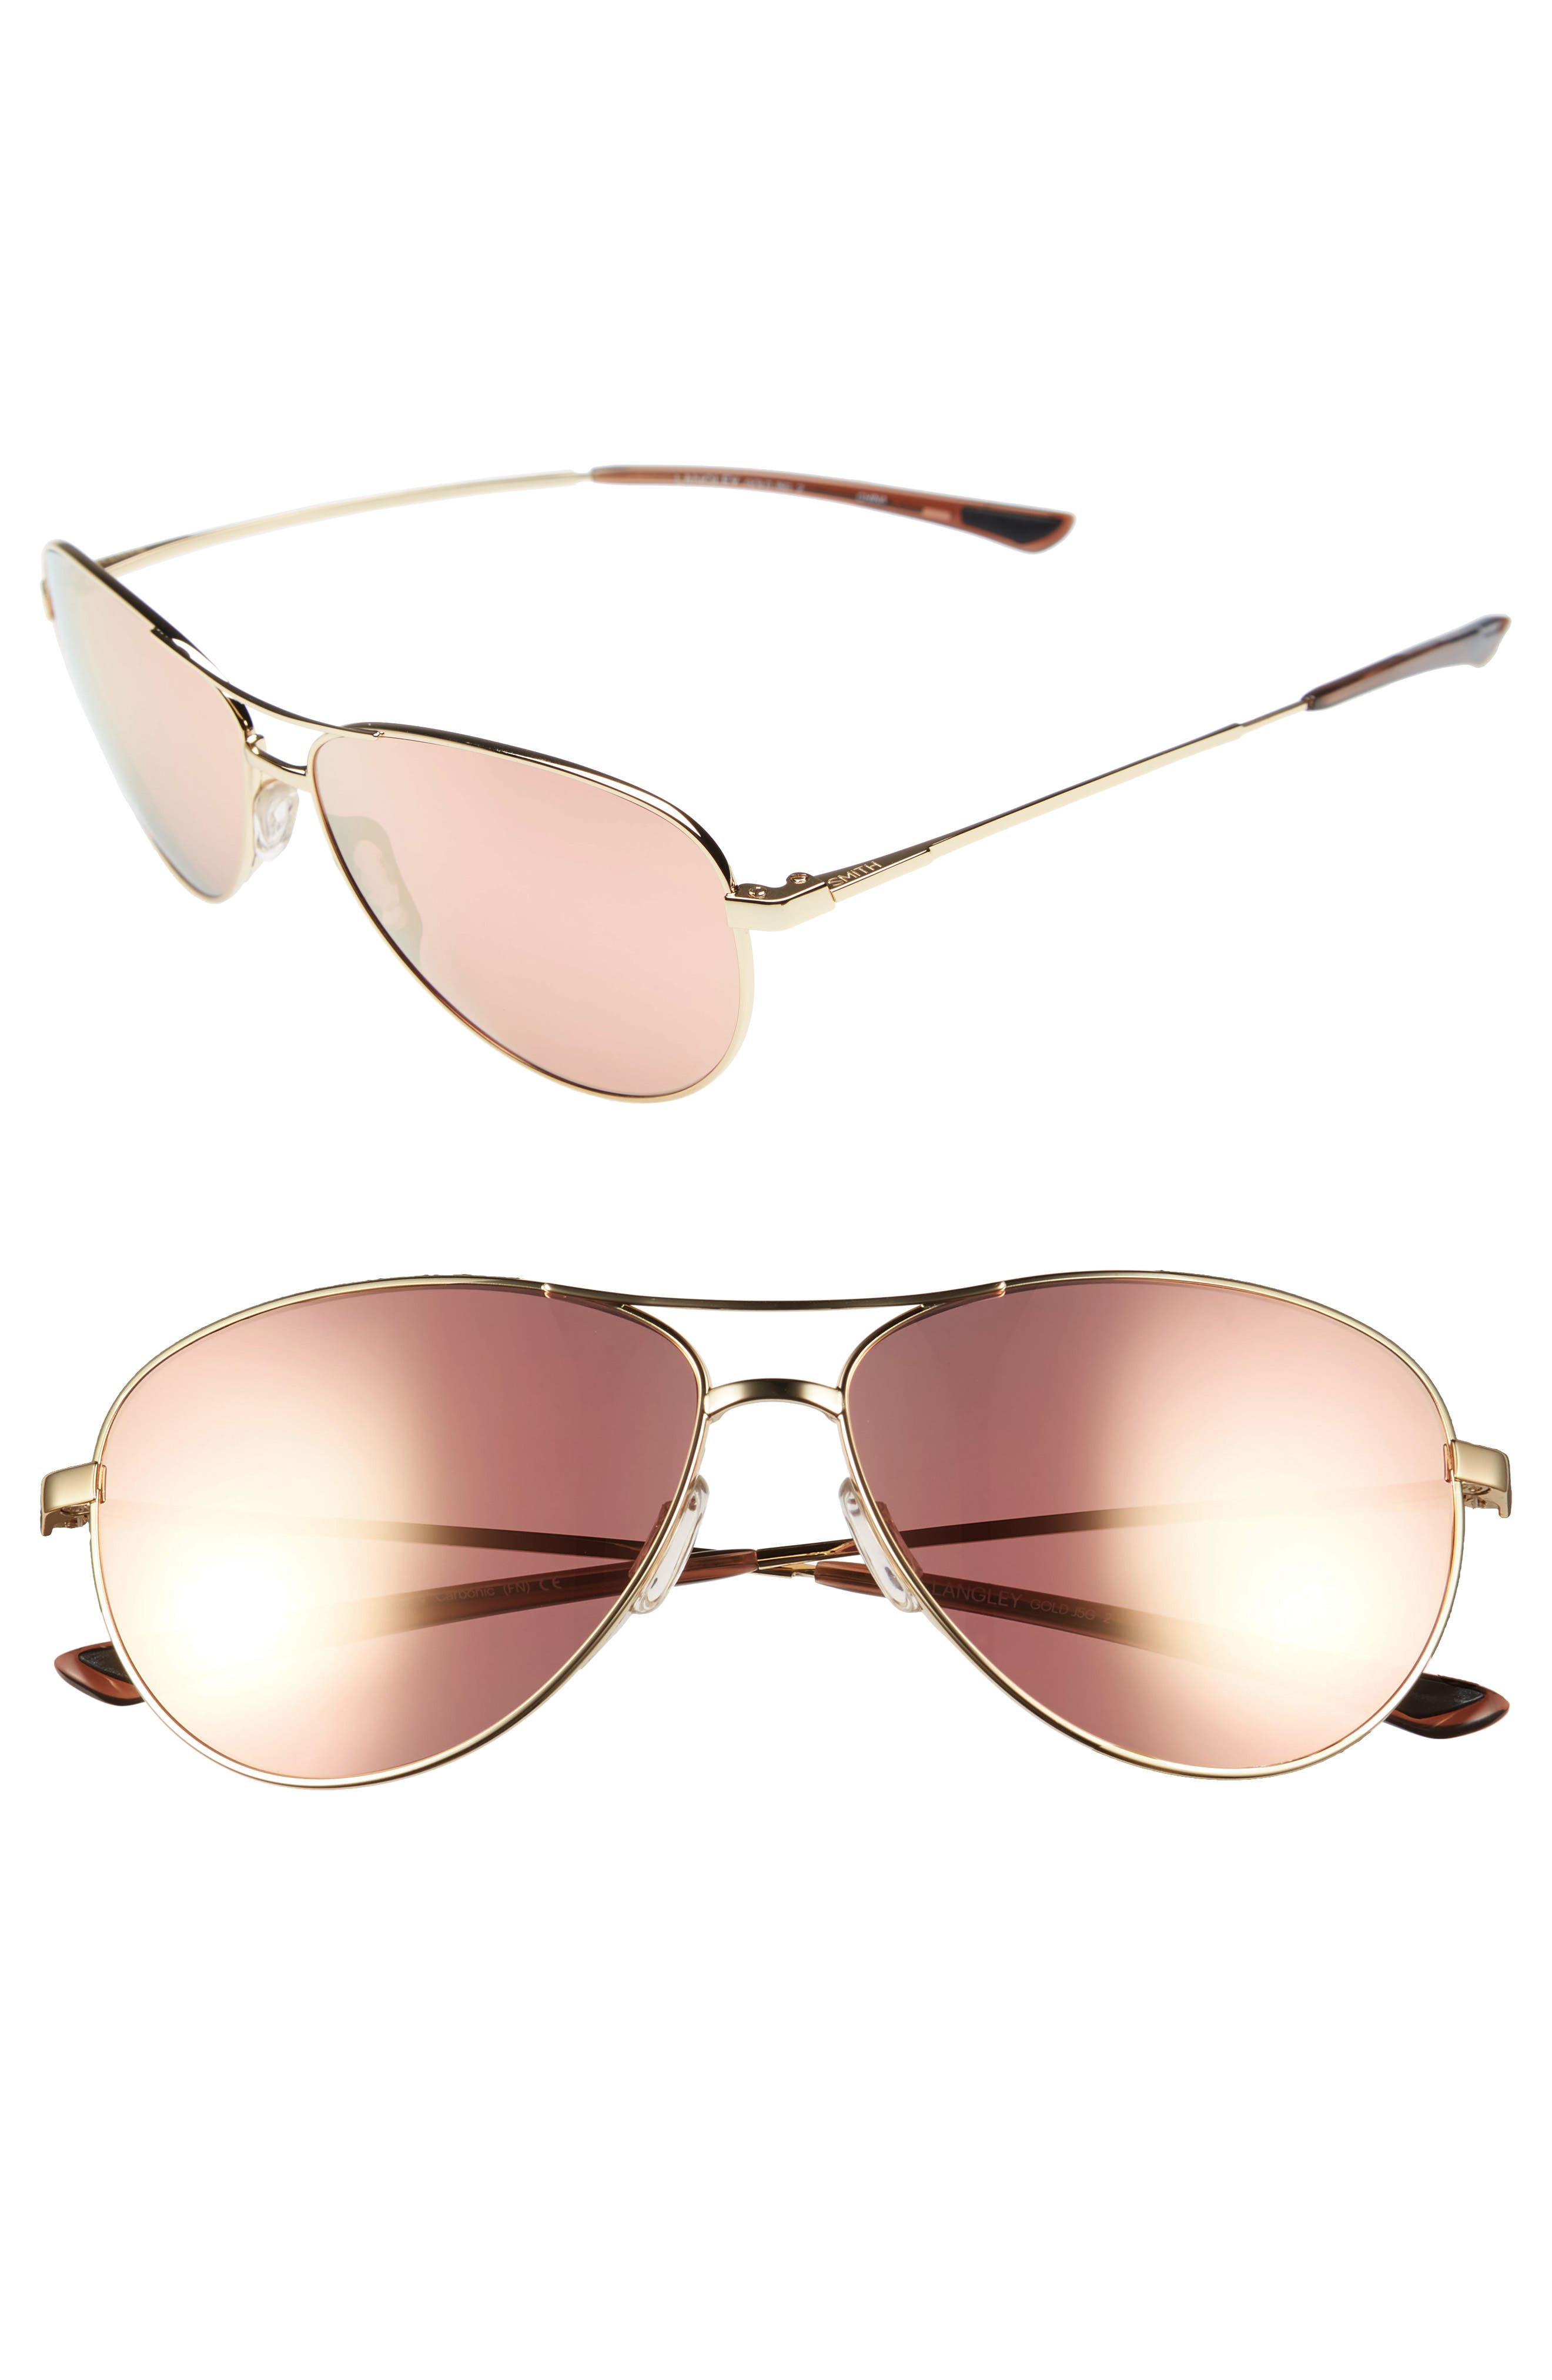 'LANGLEY' 60MM AVIATOR SUNGLASSES - GOLD